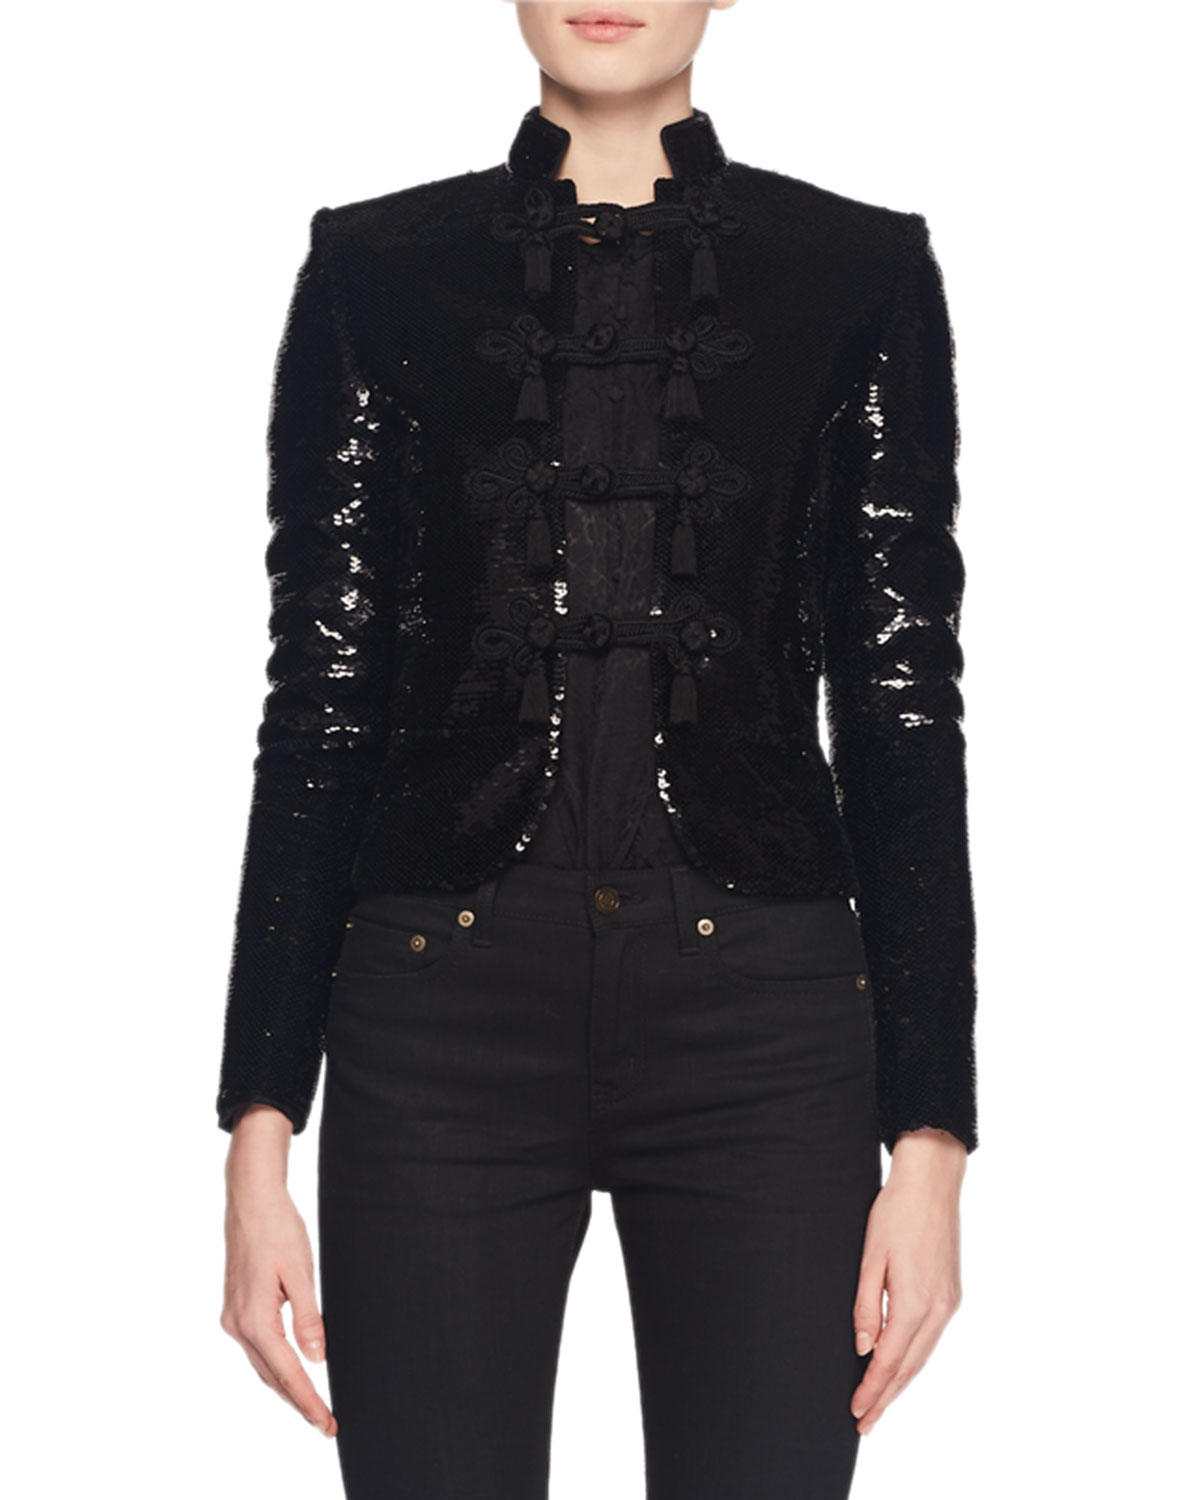 Stand-Collar Frog-Closure Short Boxy Sequin Jacket in Black